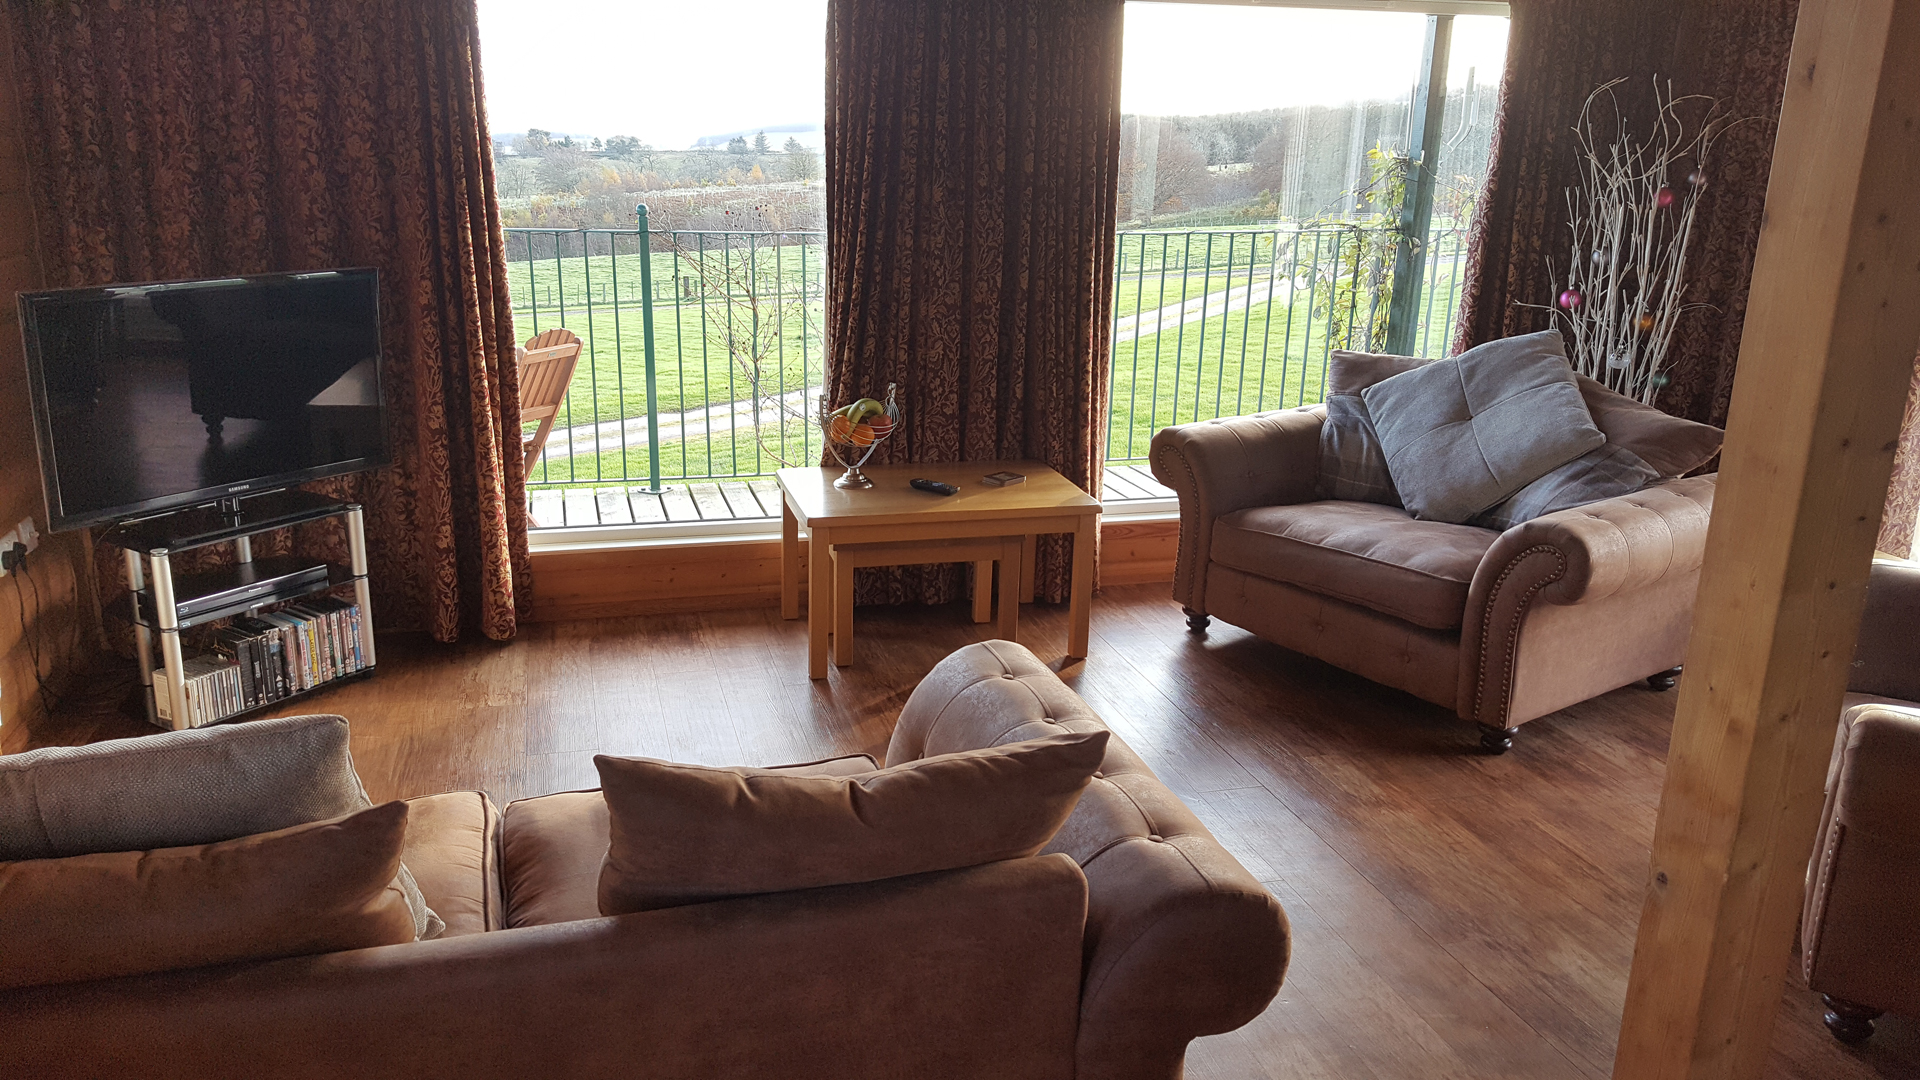 The living area with view out the large windows in The Ramsay at Airhouses Luxury Self Catering Lodges in Scottish Borders